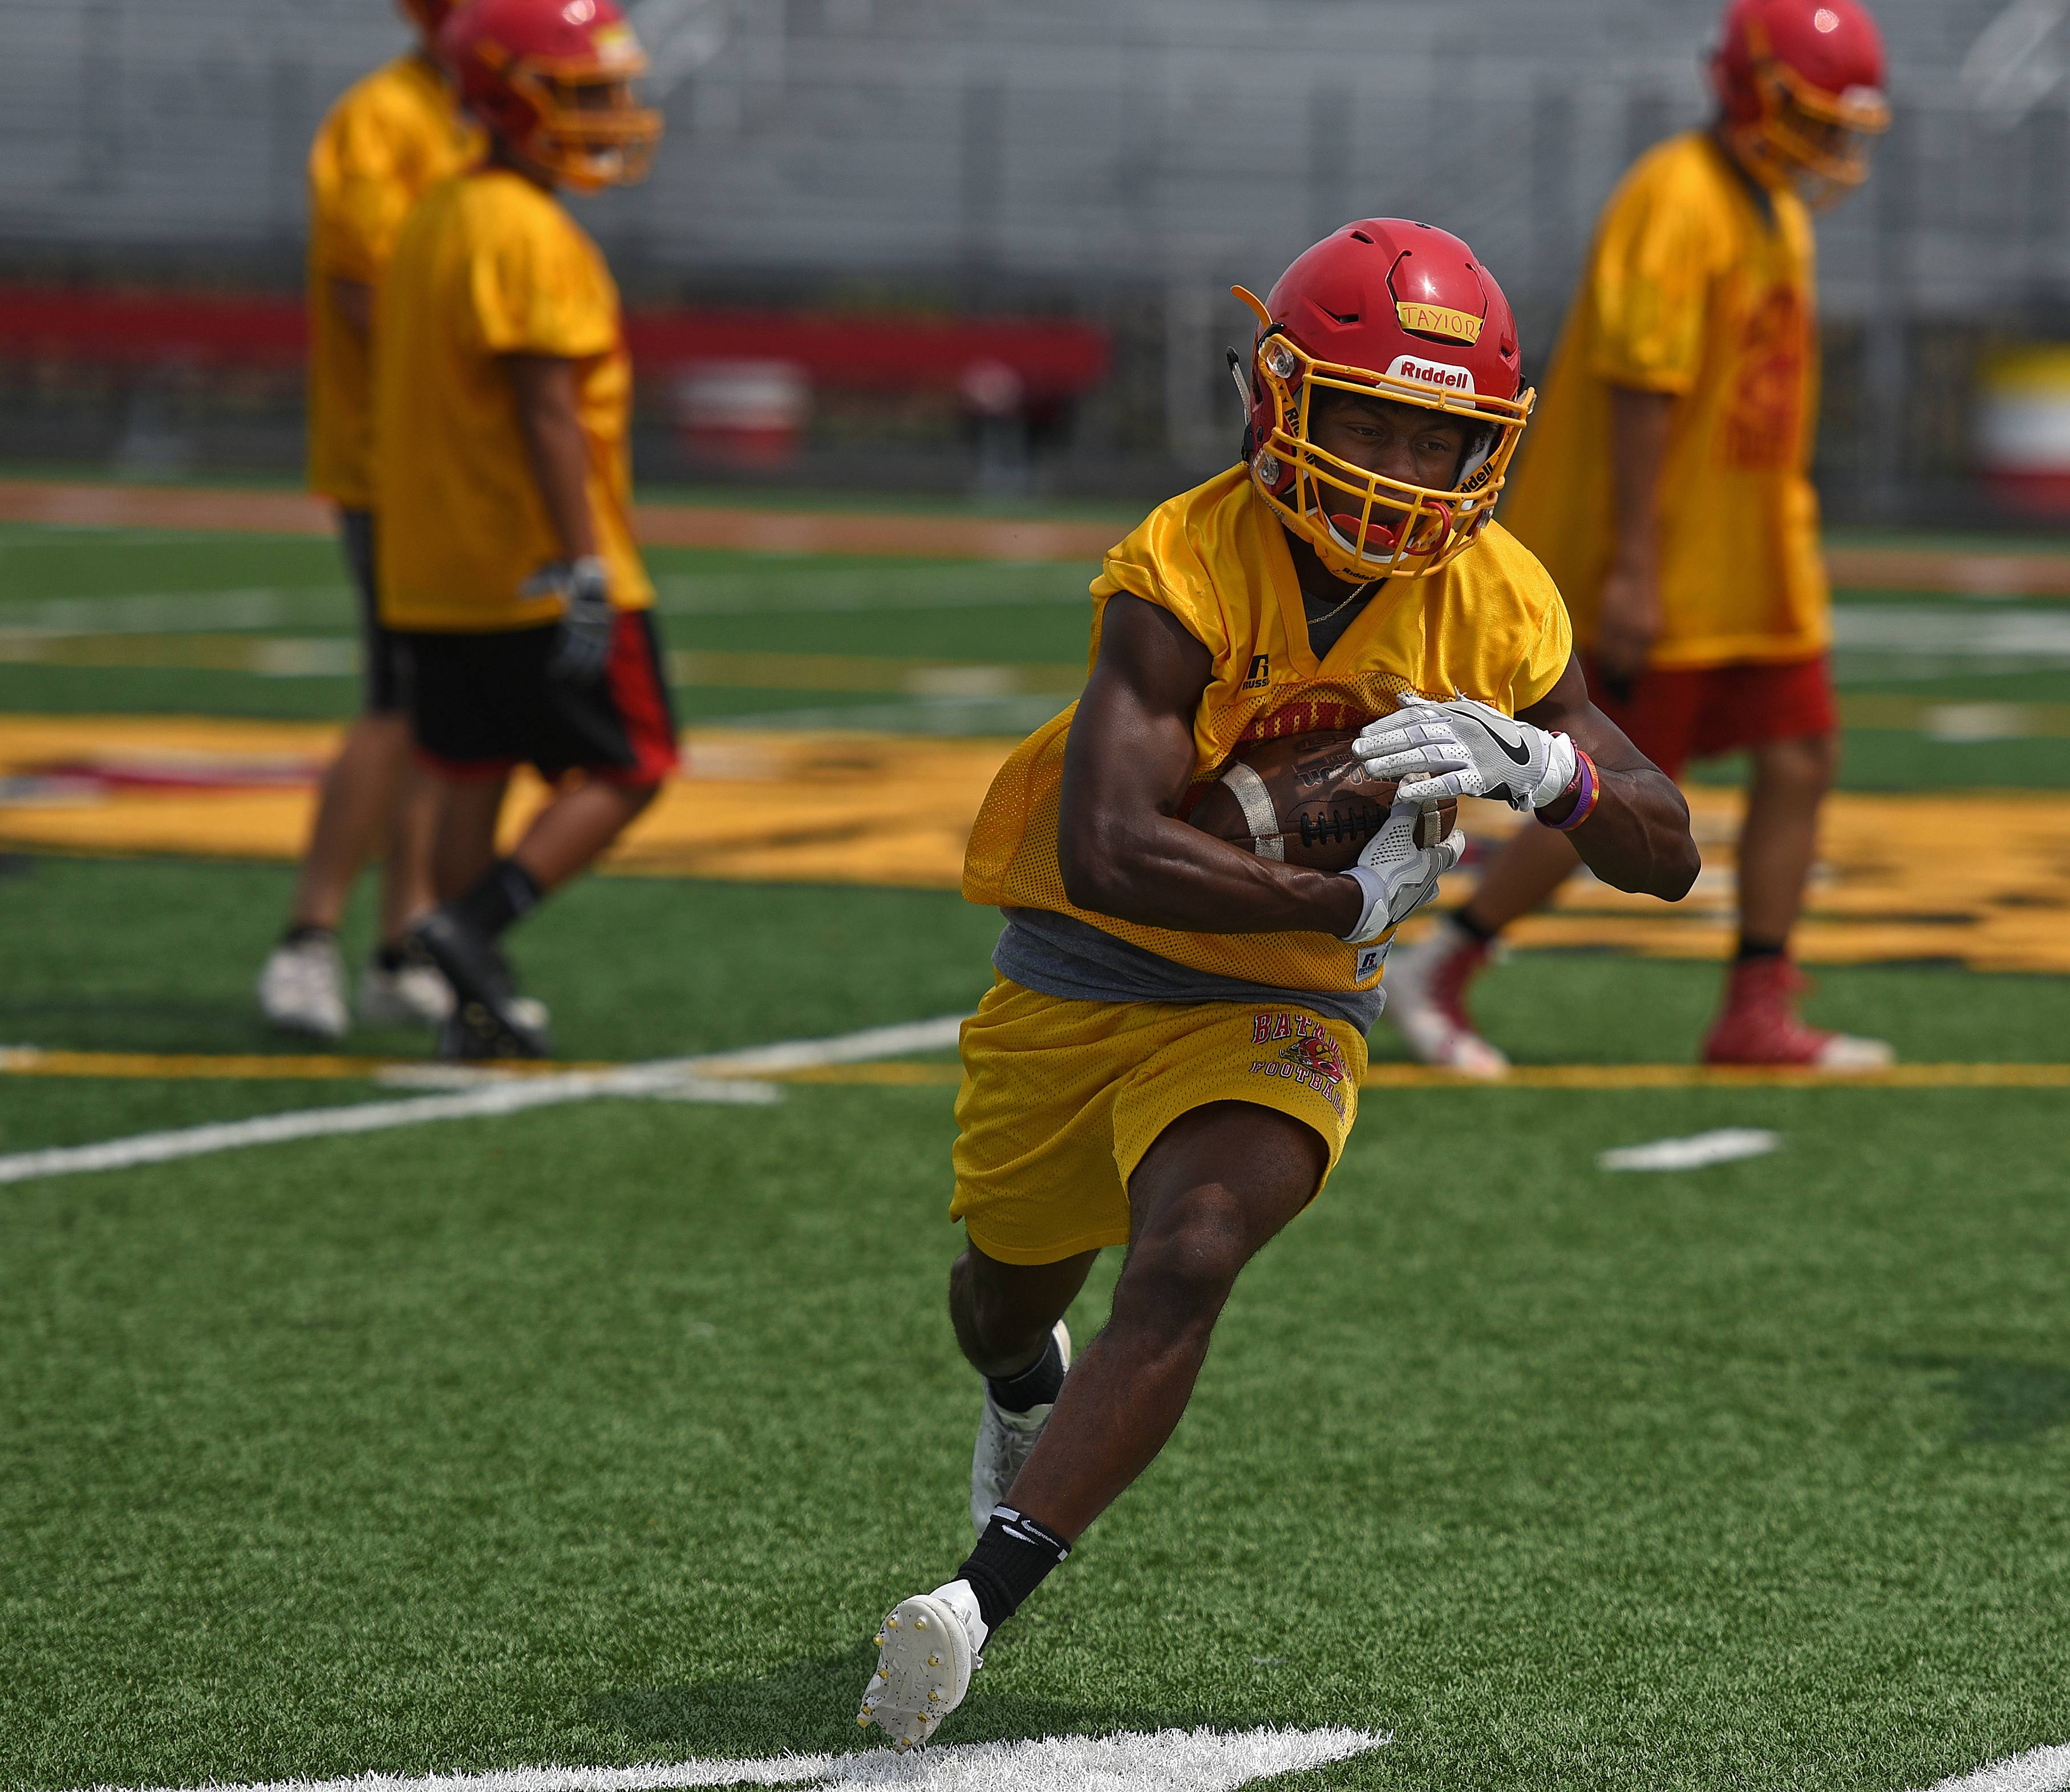 Running back Art Taylor cuts to the outside during the first day of football practice at Batavia High School Monday.